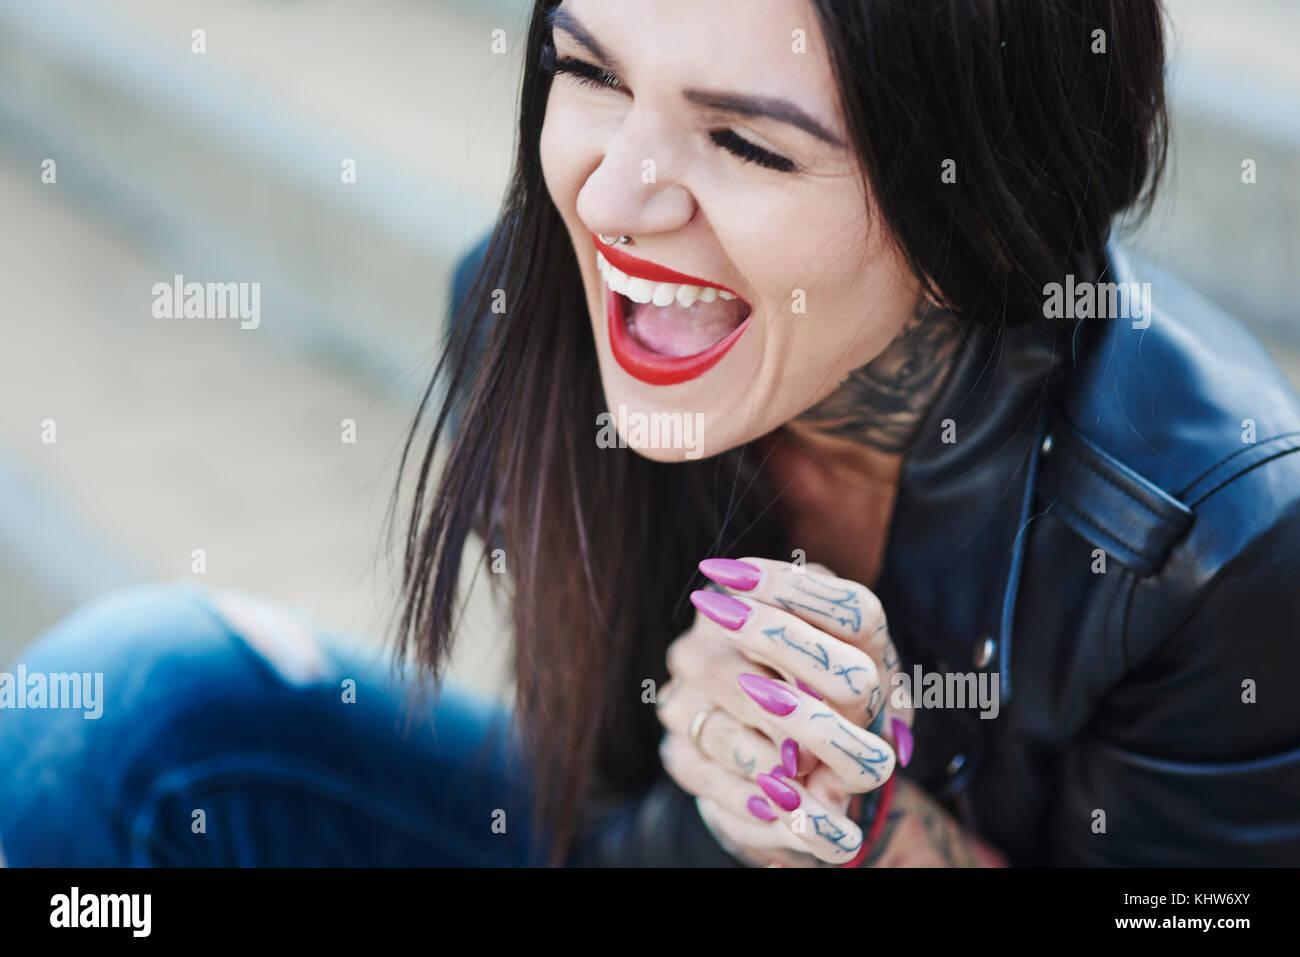 Portrait of young woman laughing, tattoos on neck and hand - Stock Image